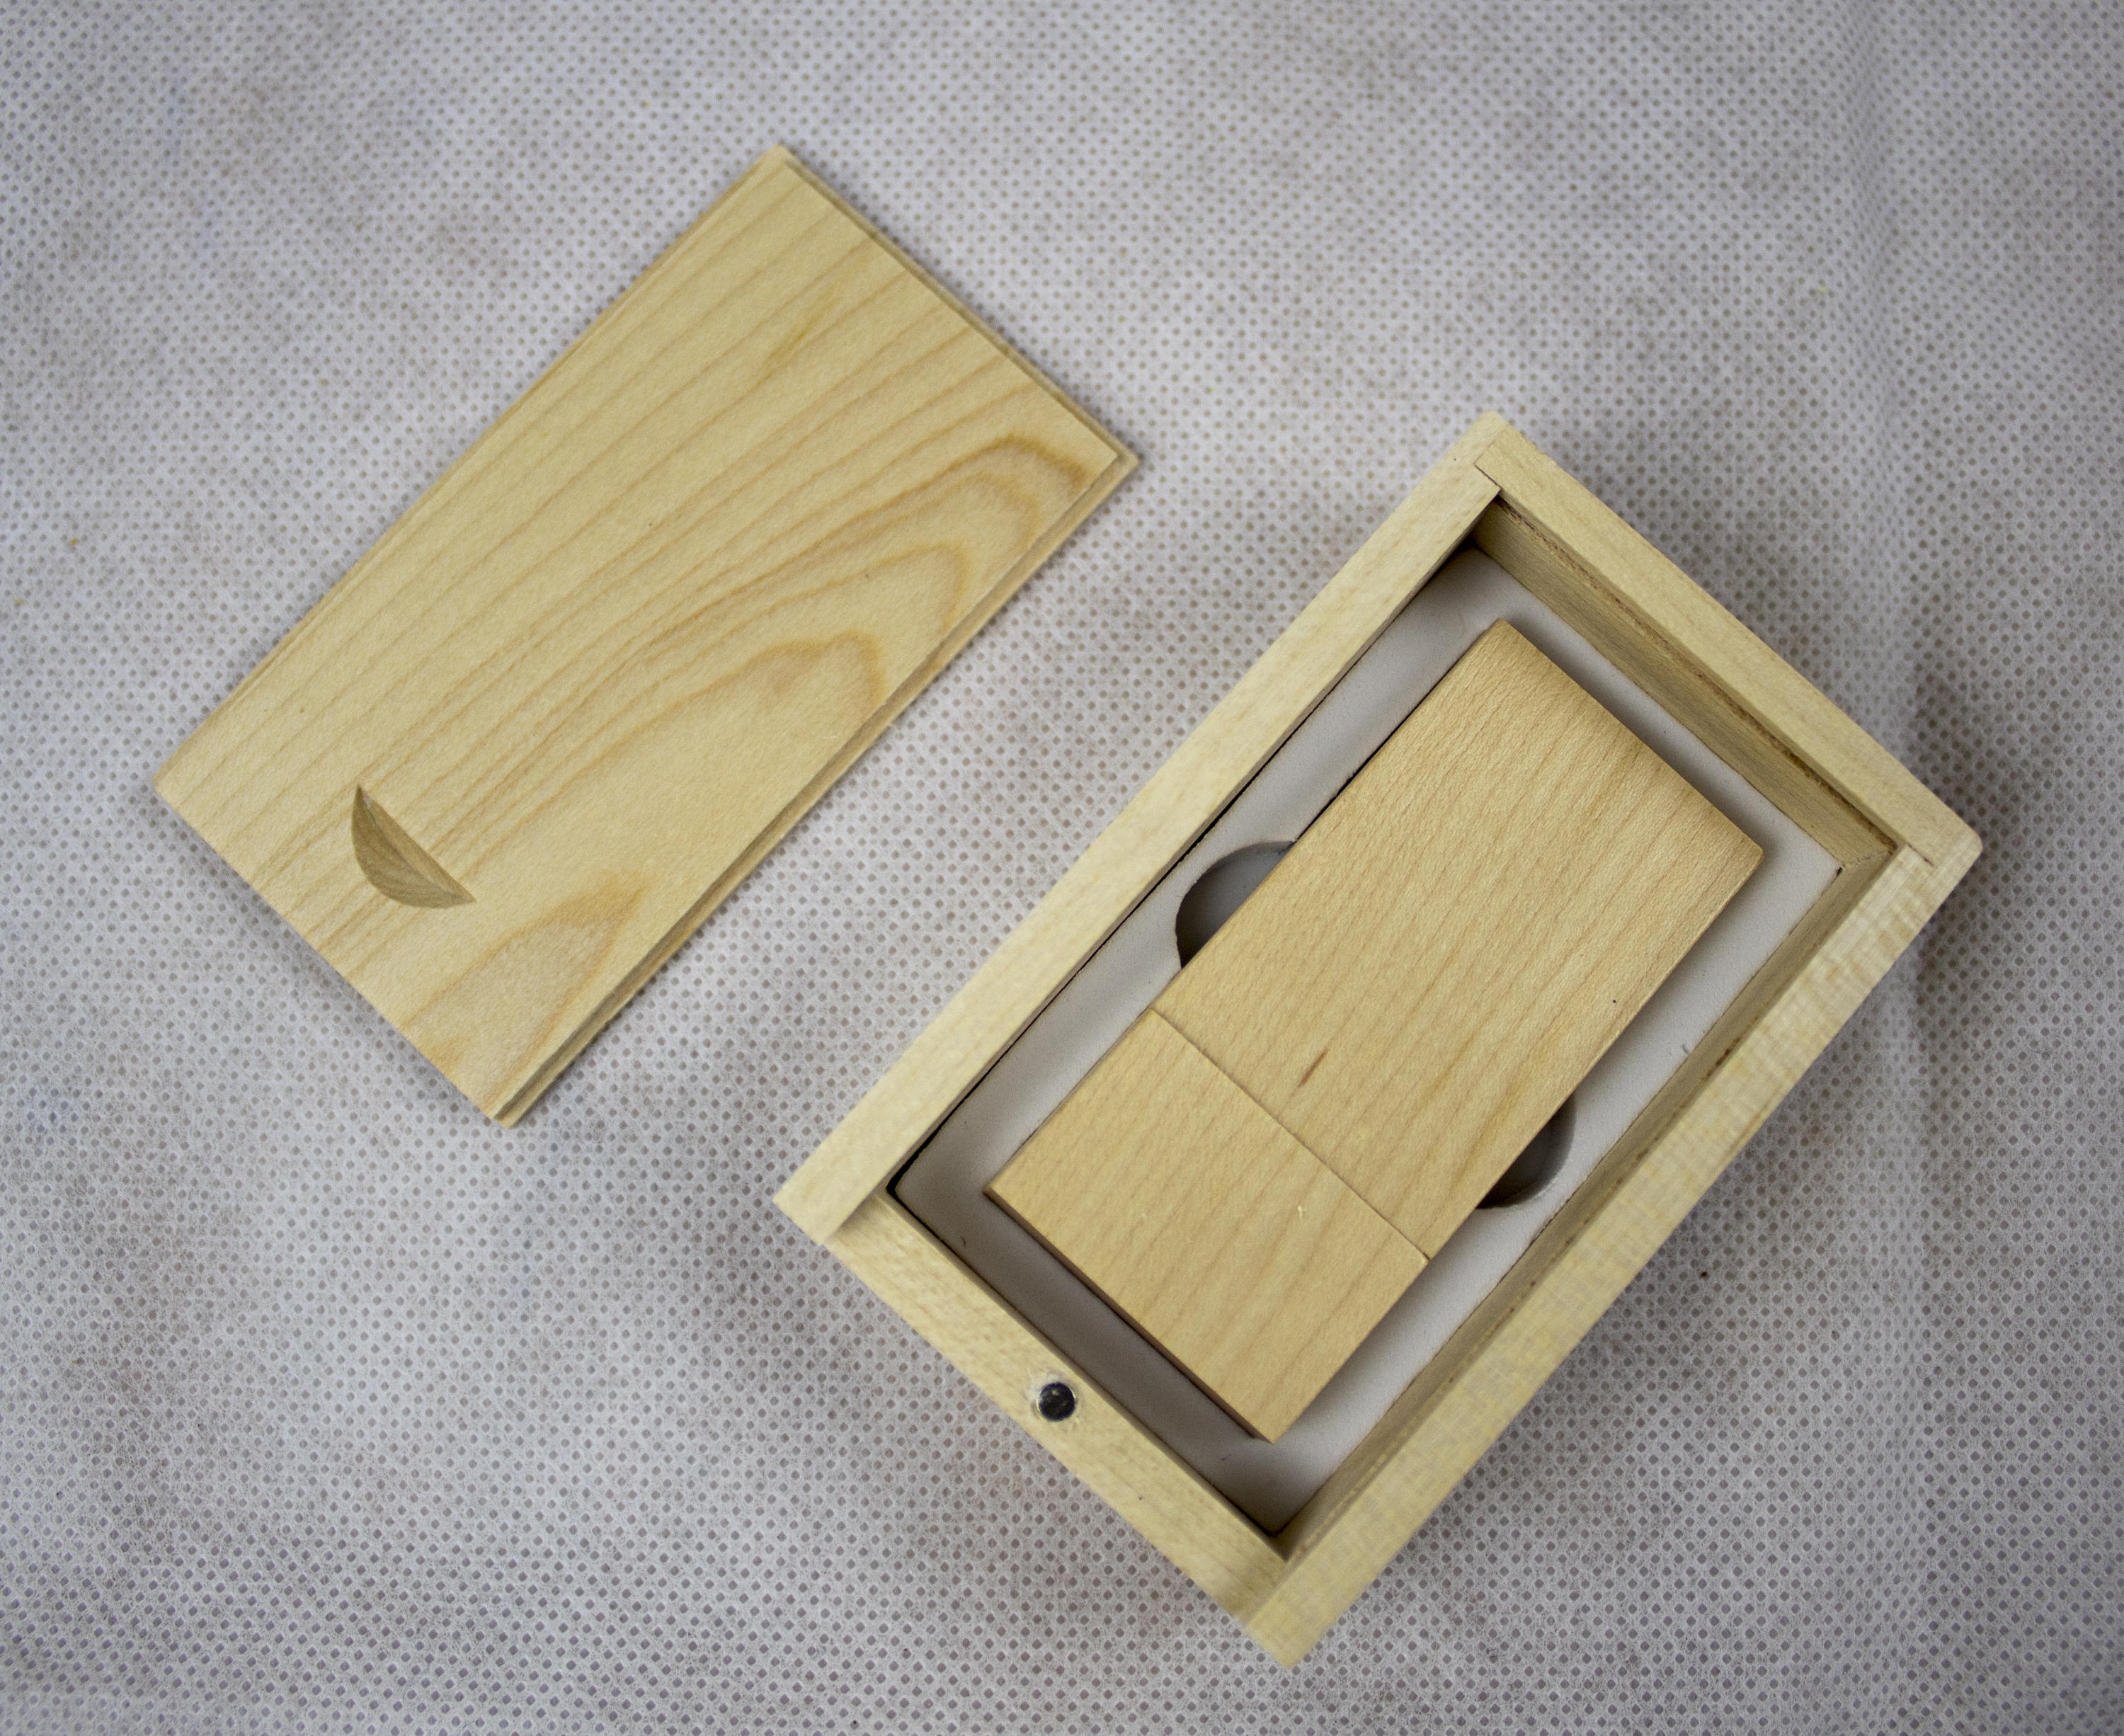 Wooden Usb and Wooden Box - Irish Wooden Gifts